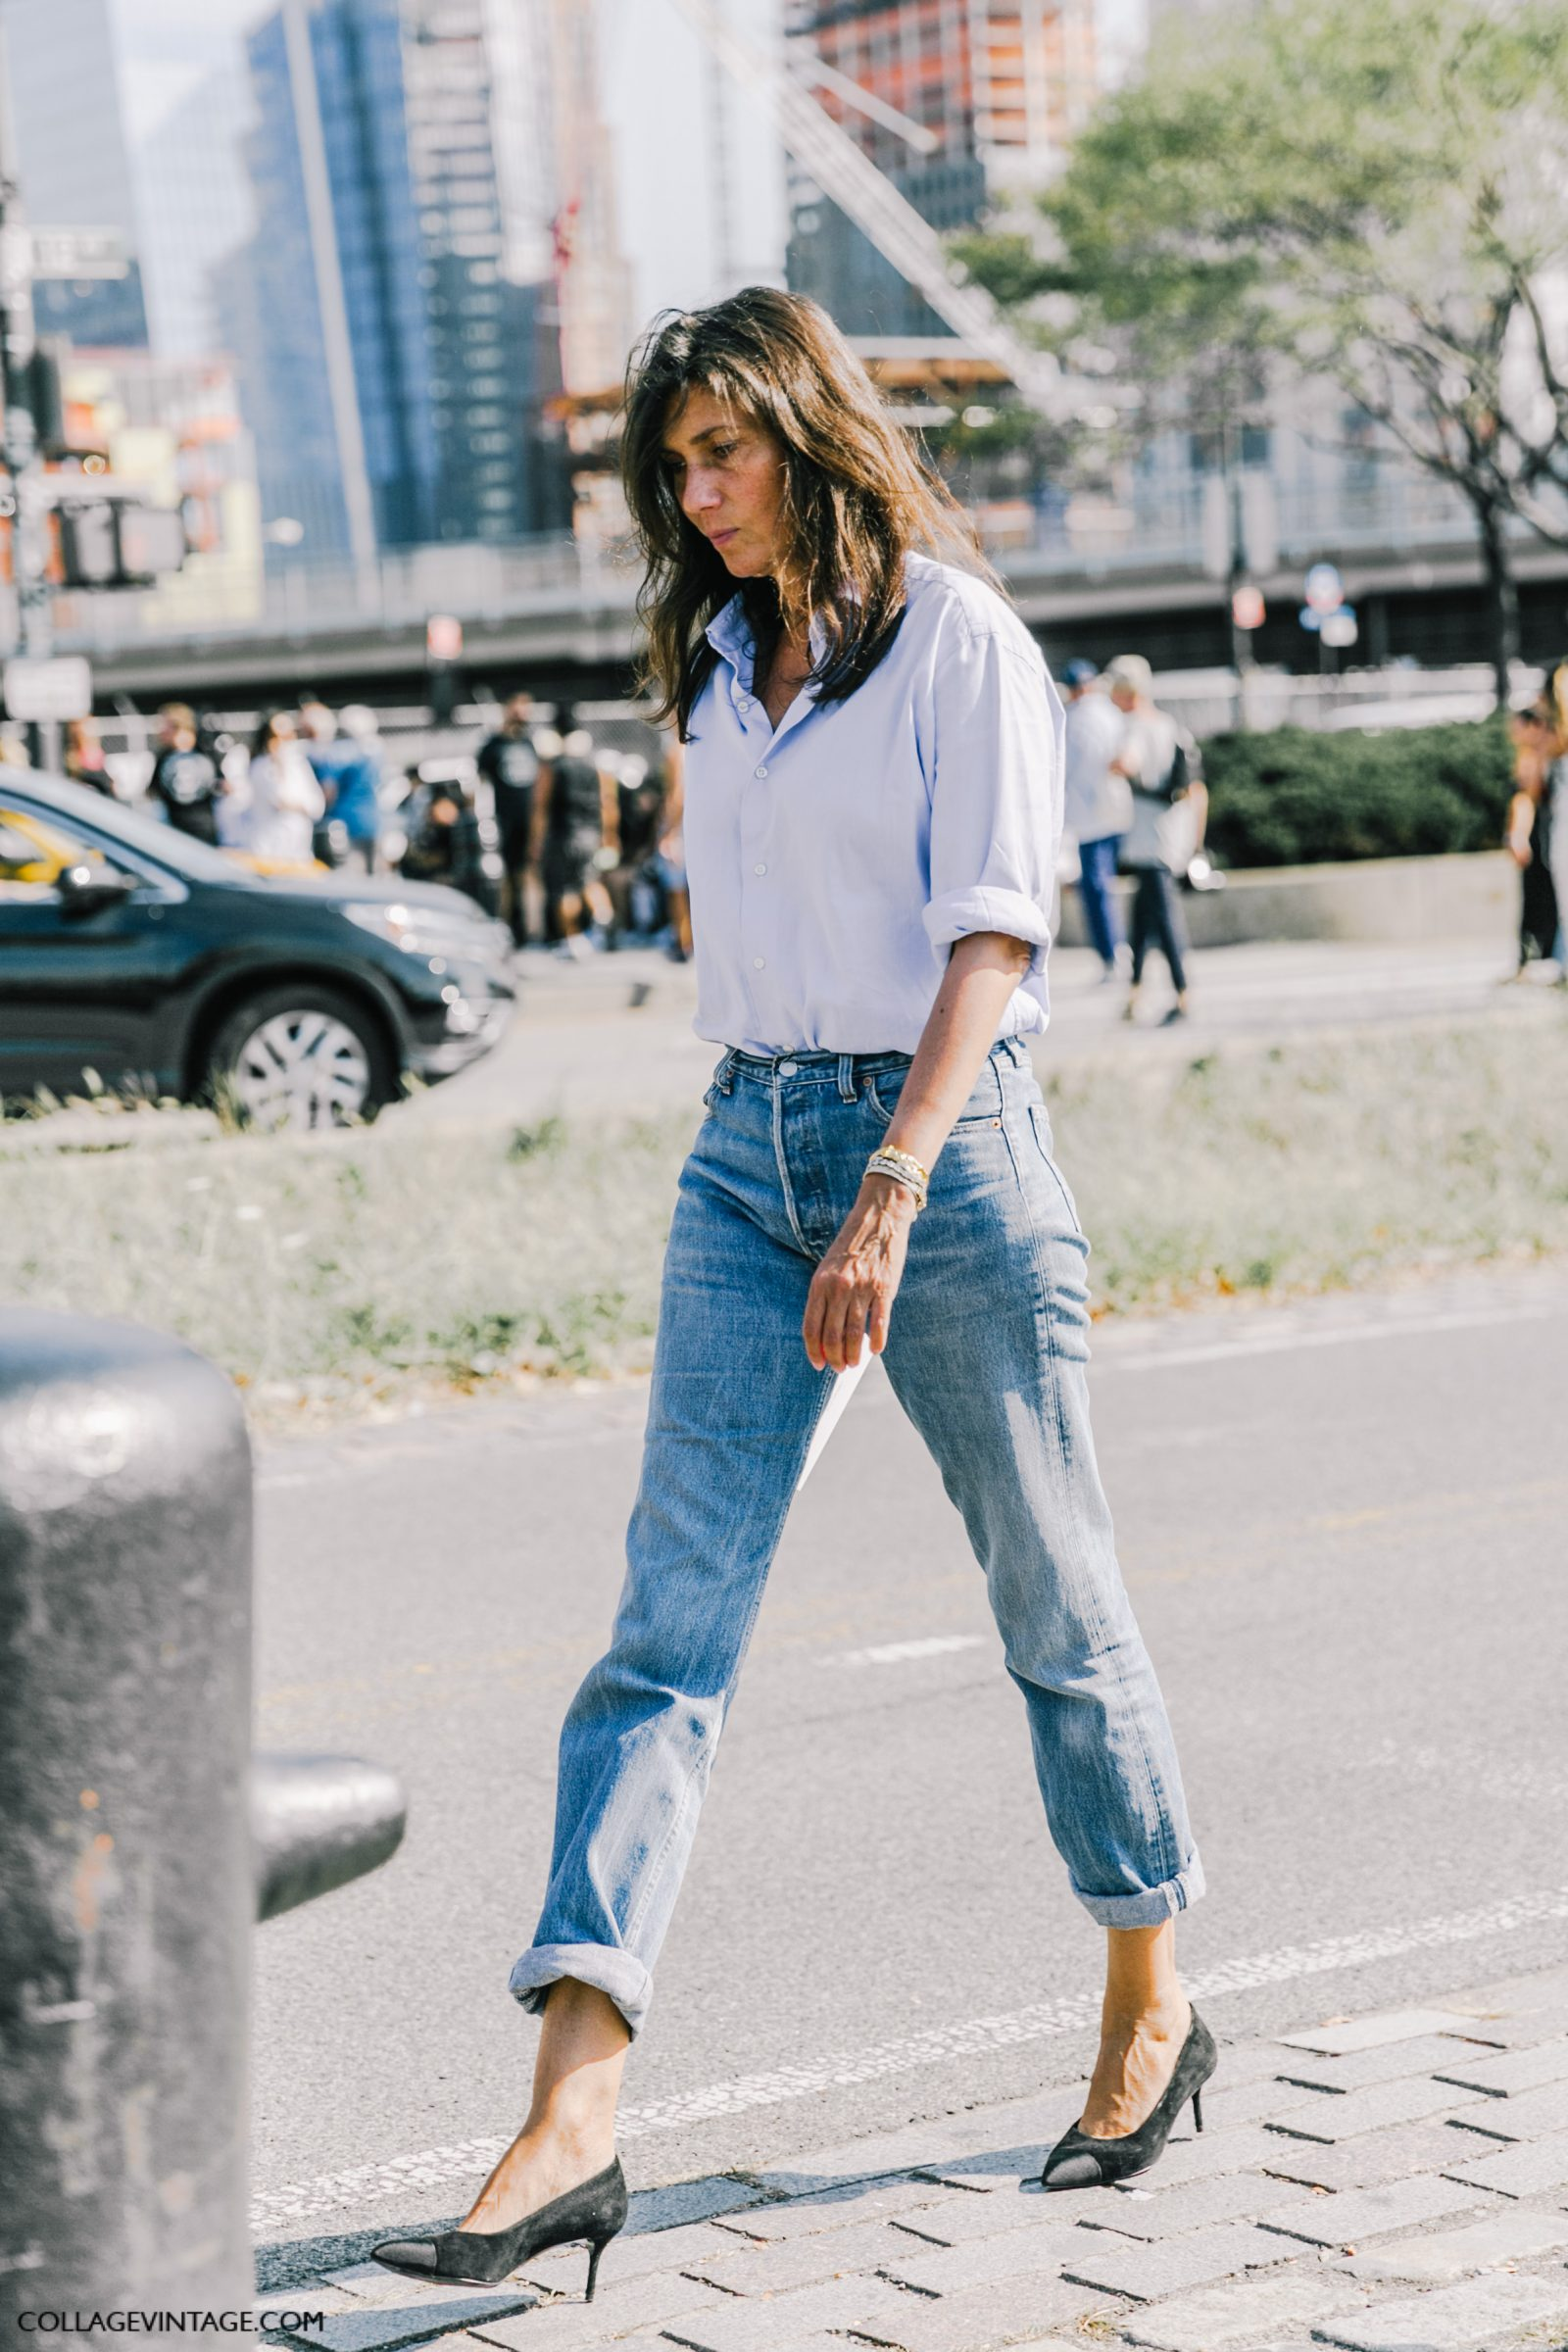 nyfw-new_york_fashion_week_ss17-street_style-outfits-collage_vintage-vintage-mansur_gavriel-rodarte-coach-132